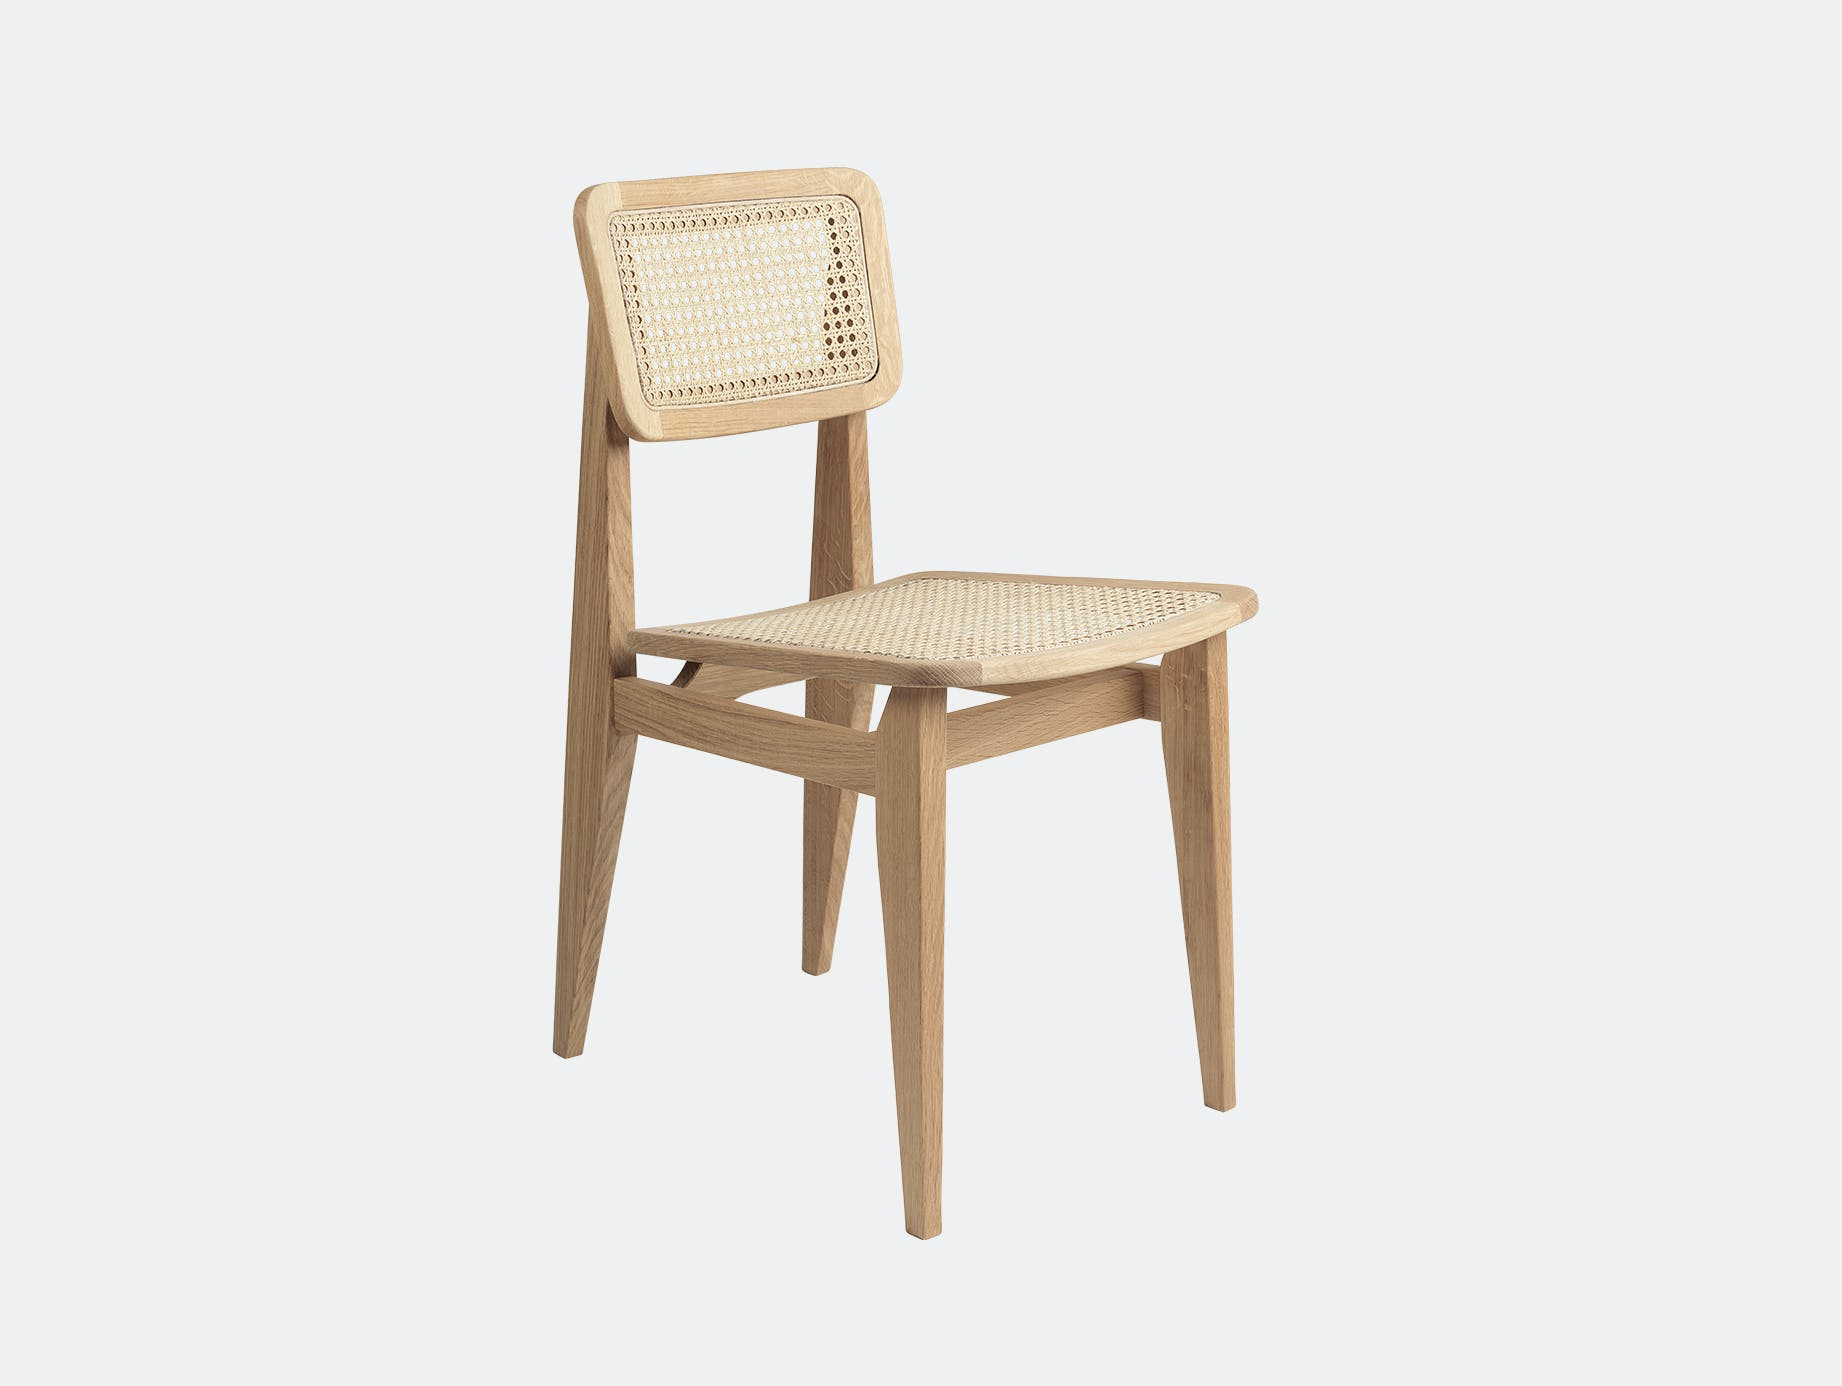 Gubi c chair dining all cane oil oak